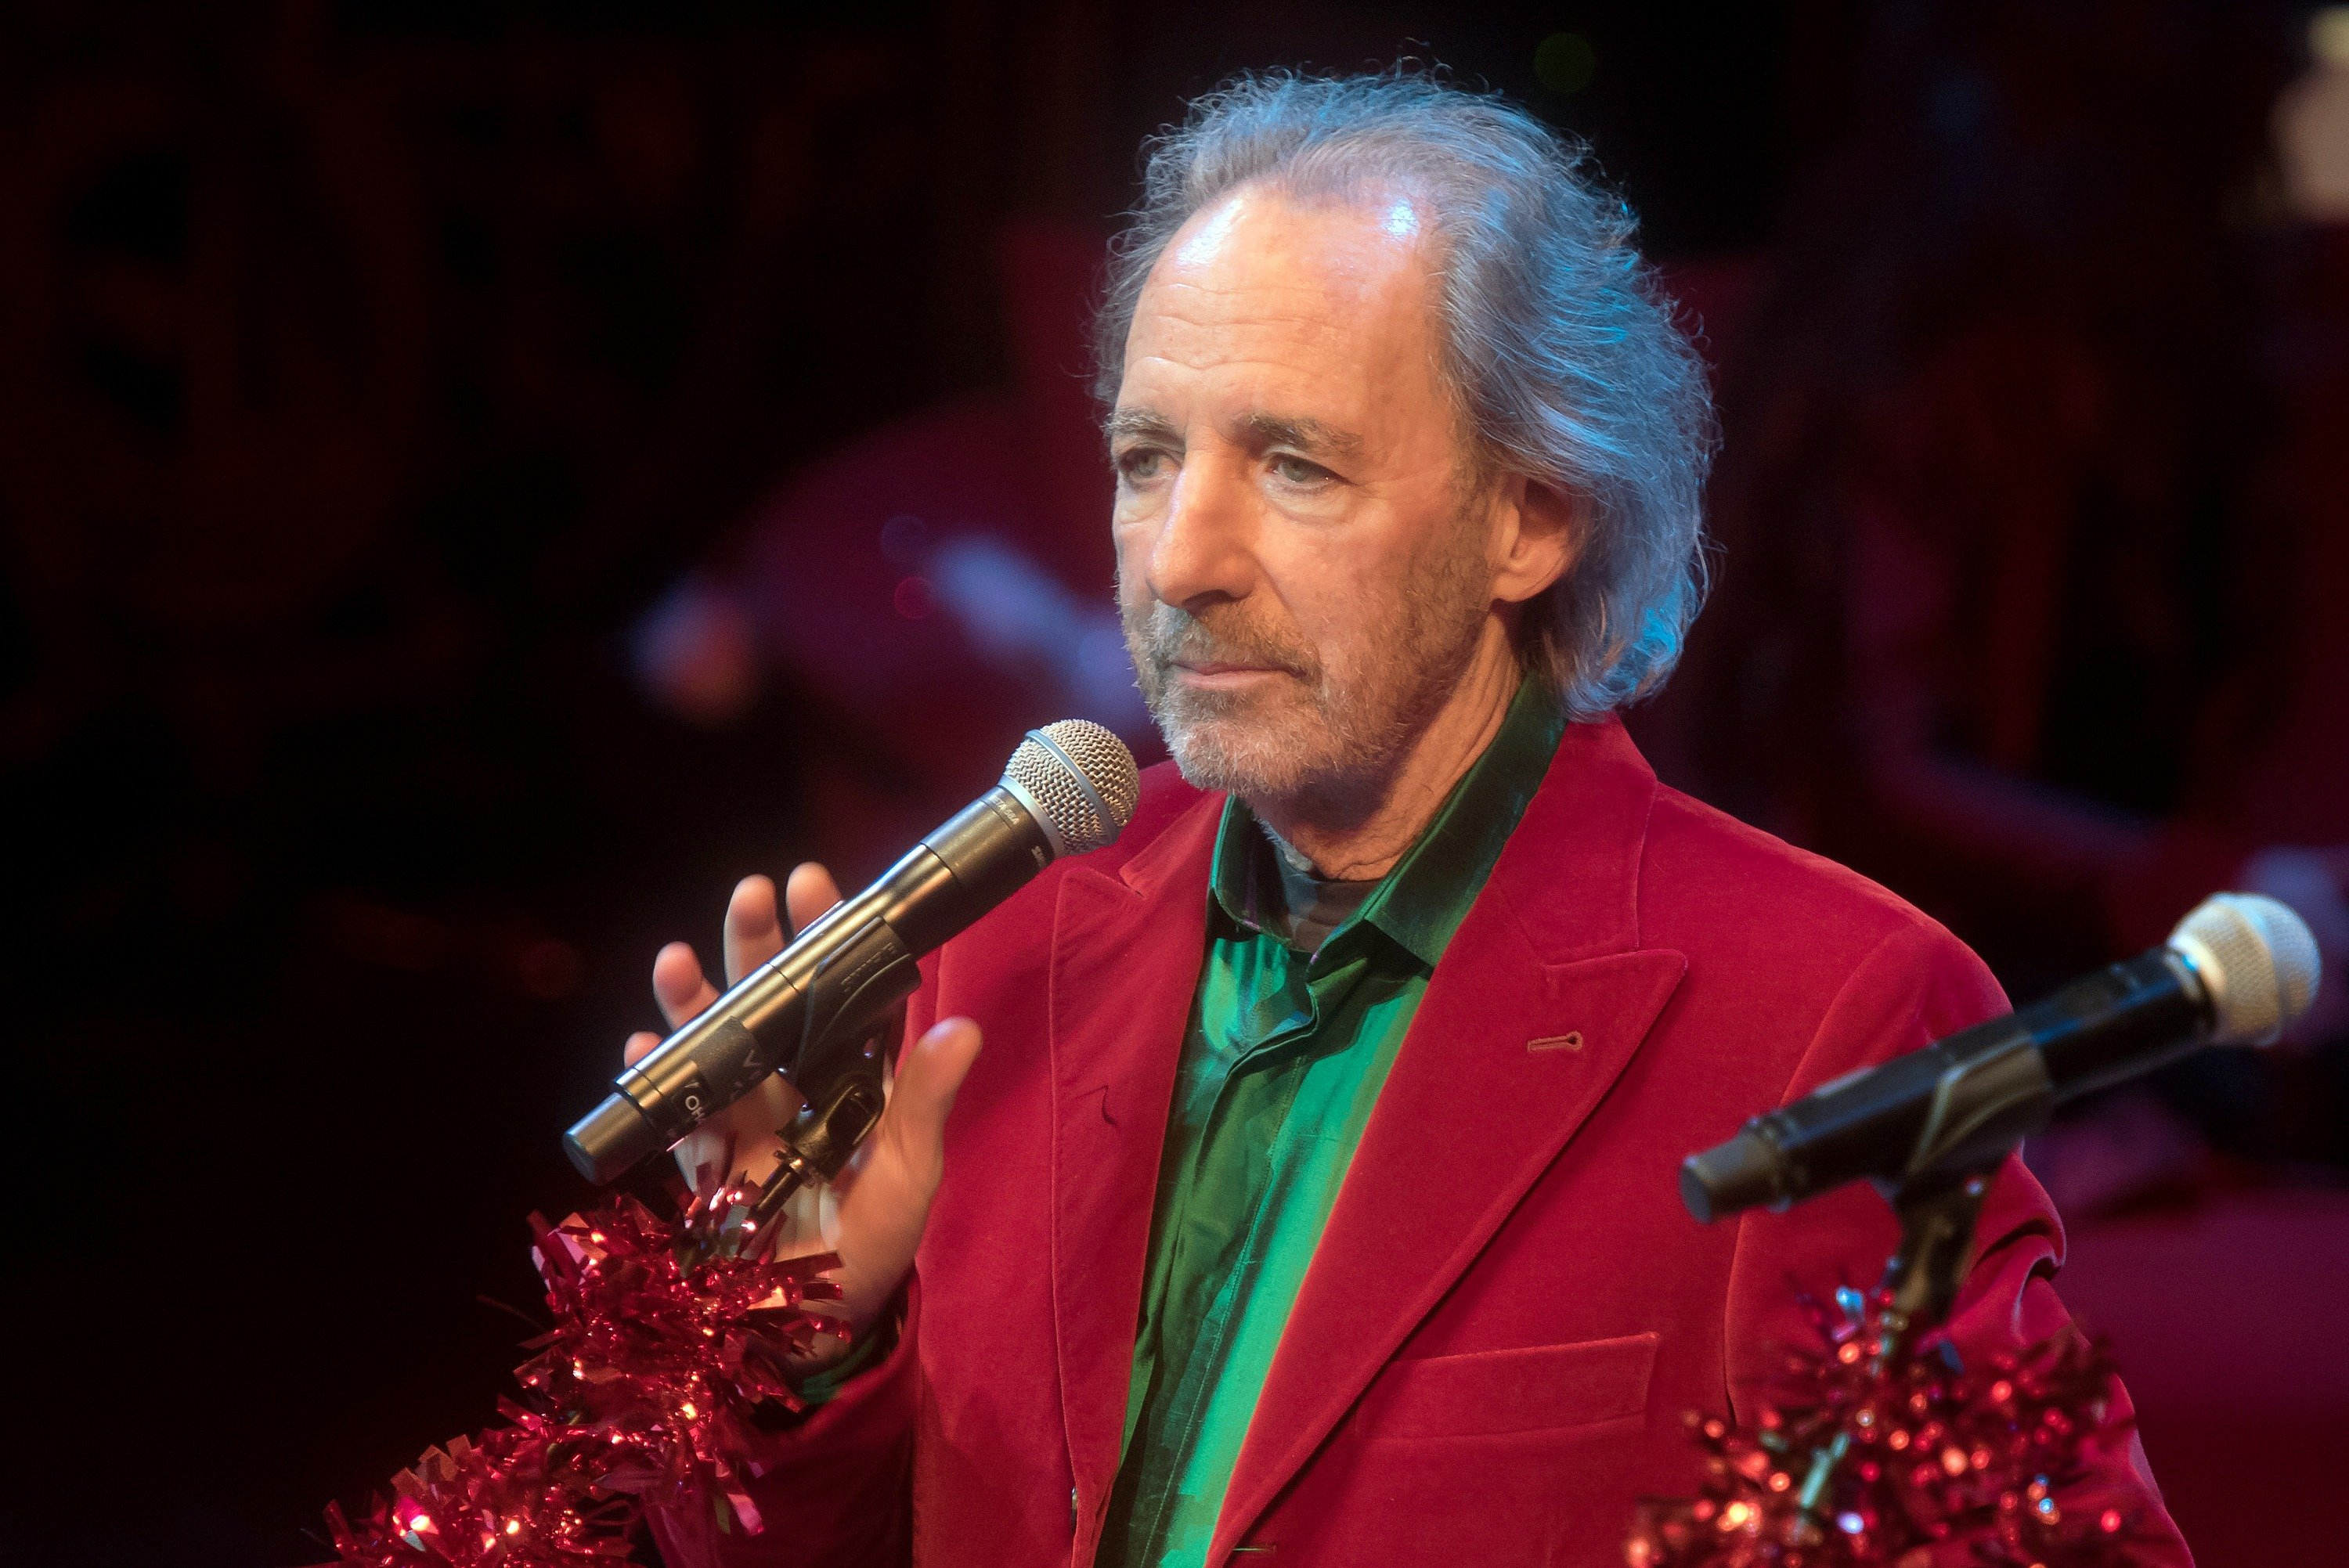 Harry Shearer performs during the Christmas Without Tears New York Concert at BAM Peter Jay Sharp Building on December 1, 2015 in the Brooklyn borough of New York City